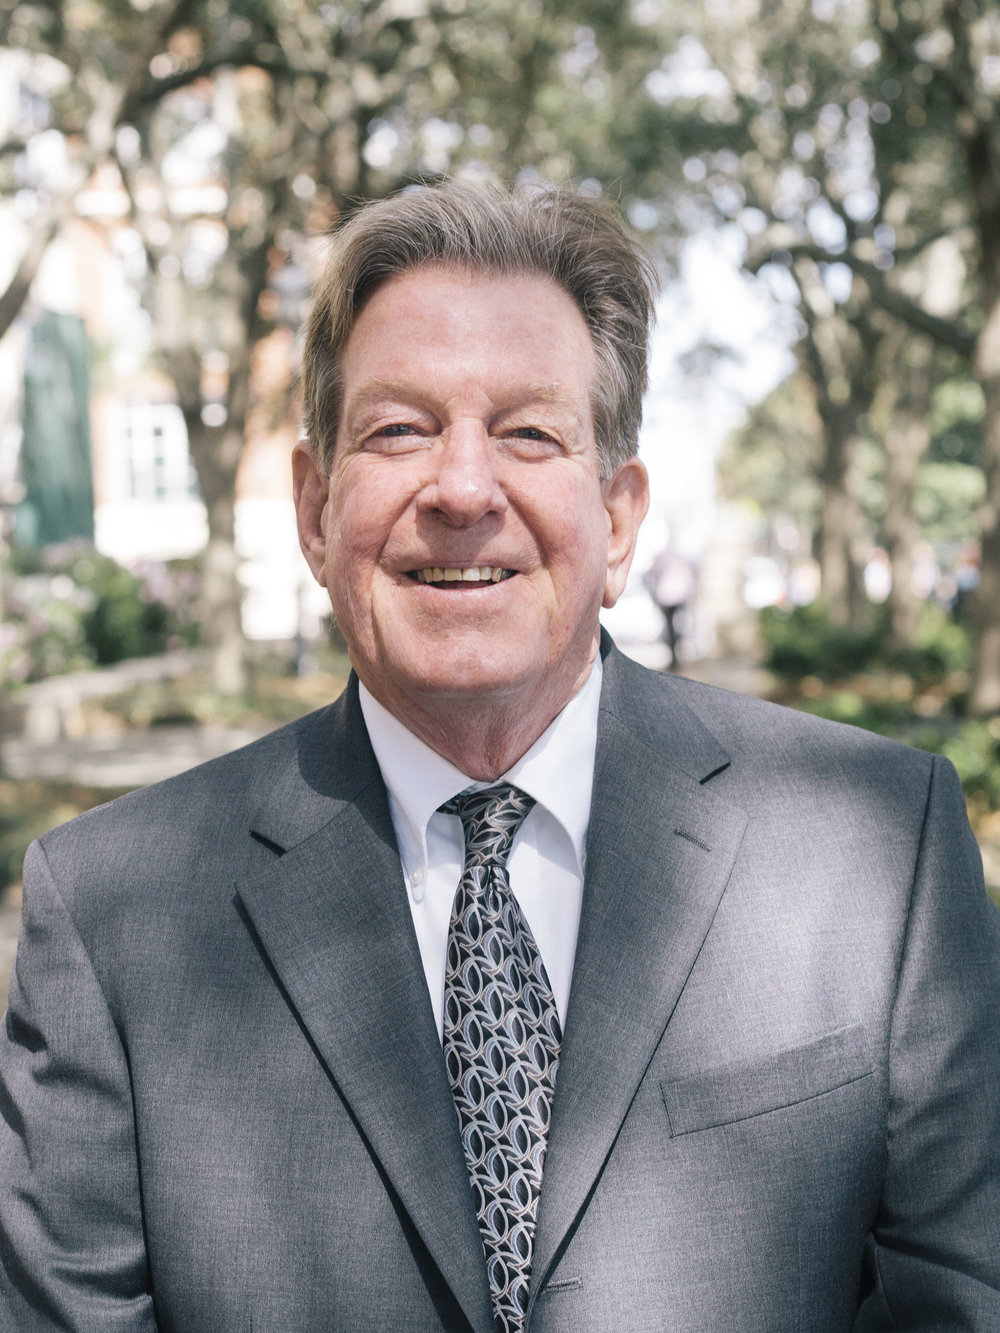 """Andrew """"Andy"""" Matsick - Sales AssociatePhone: 843.442.6611With a B.A. and Masters Degrees from UNC Chapel Hill, NC in 1974 and 1979 respectively, Andy worked as a psychologist for ten years. In the early 1980s he started in commercial real estate and has been a colleague with Debbie for the majority of those years. Working in the various areas of commercial real estate for over 28 years he has an affinity for the details involved in all contractual dealings, with a specialty in Buyer and Tenant representation for office, industrial and retail spaces."""